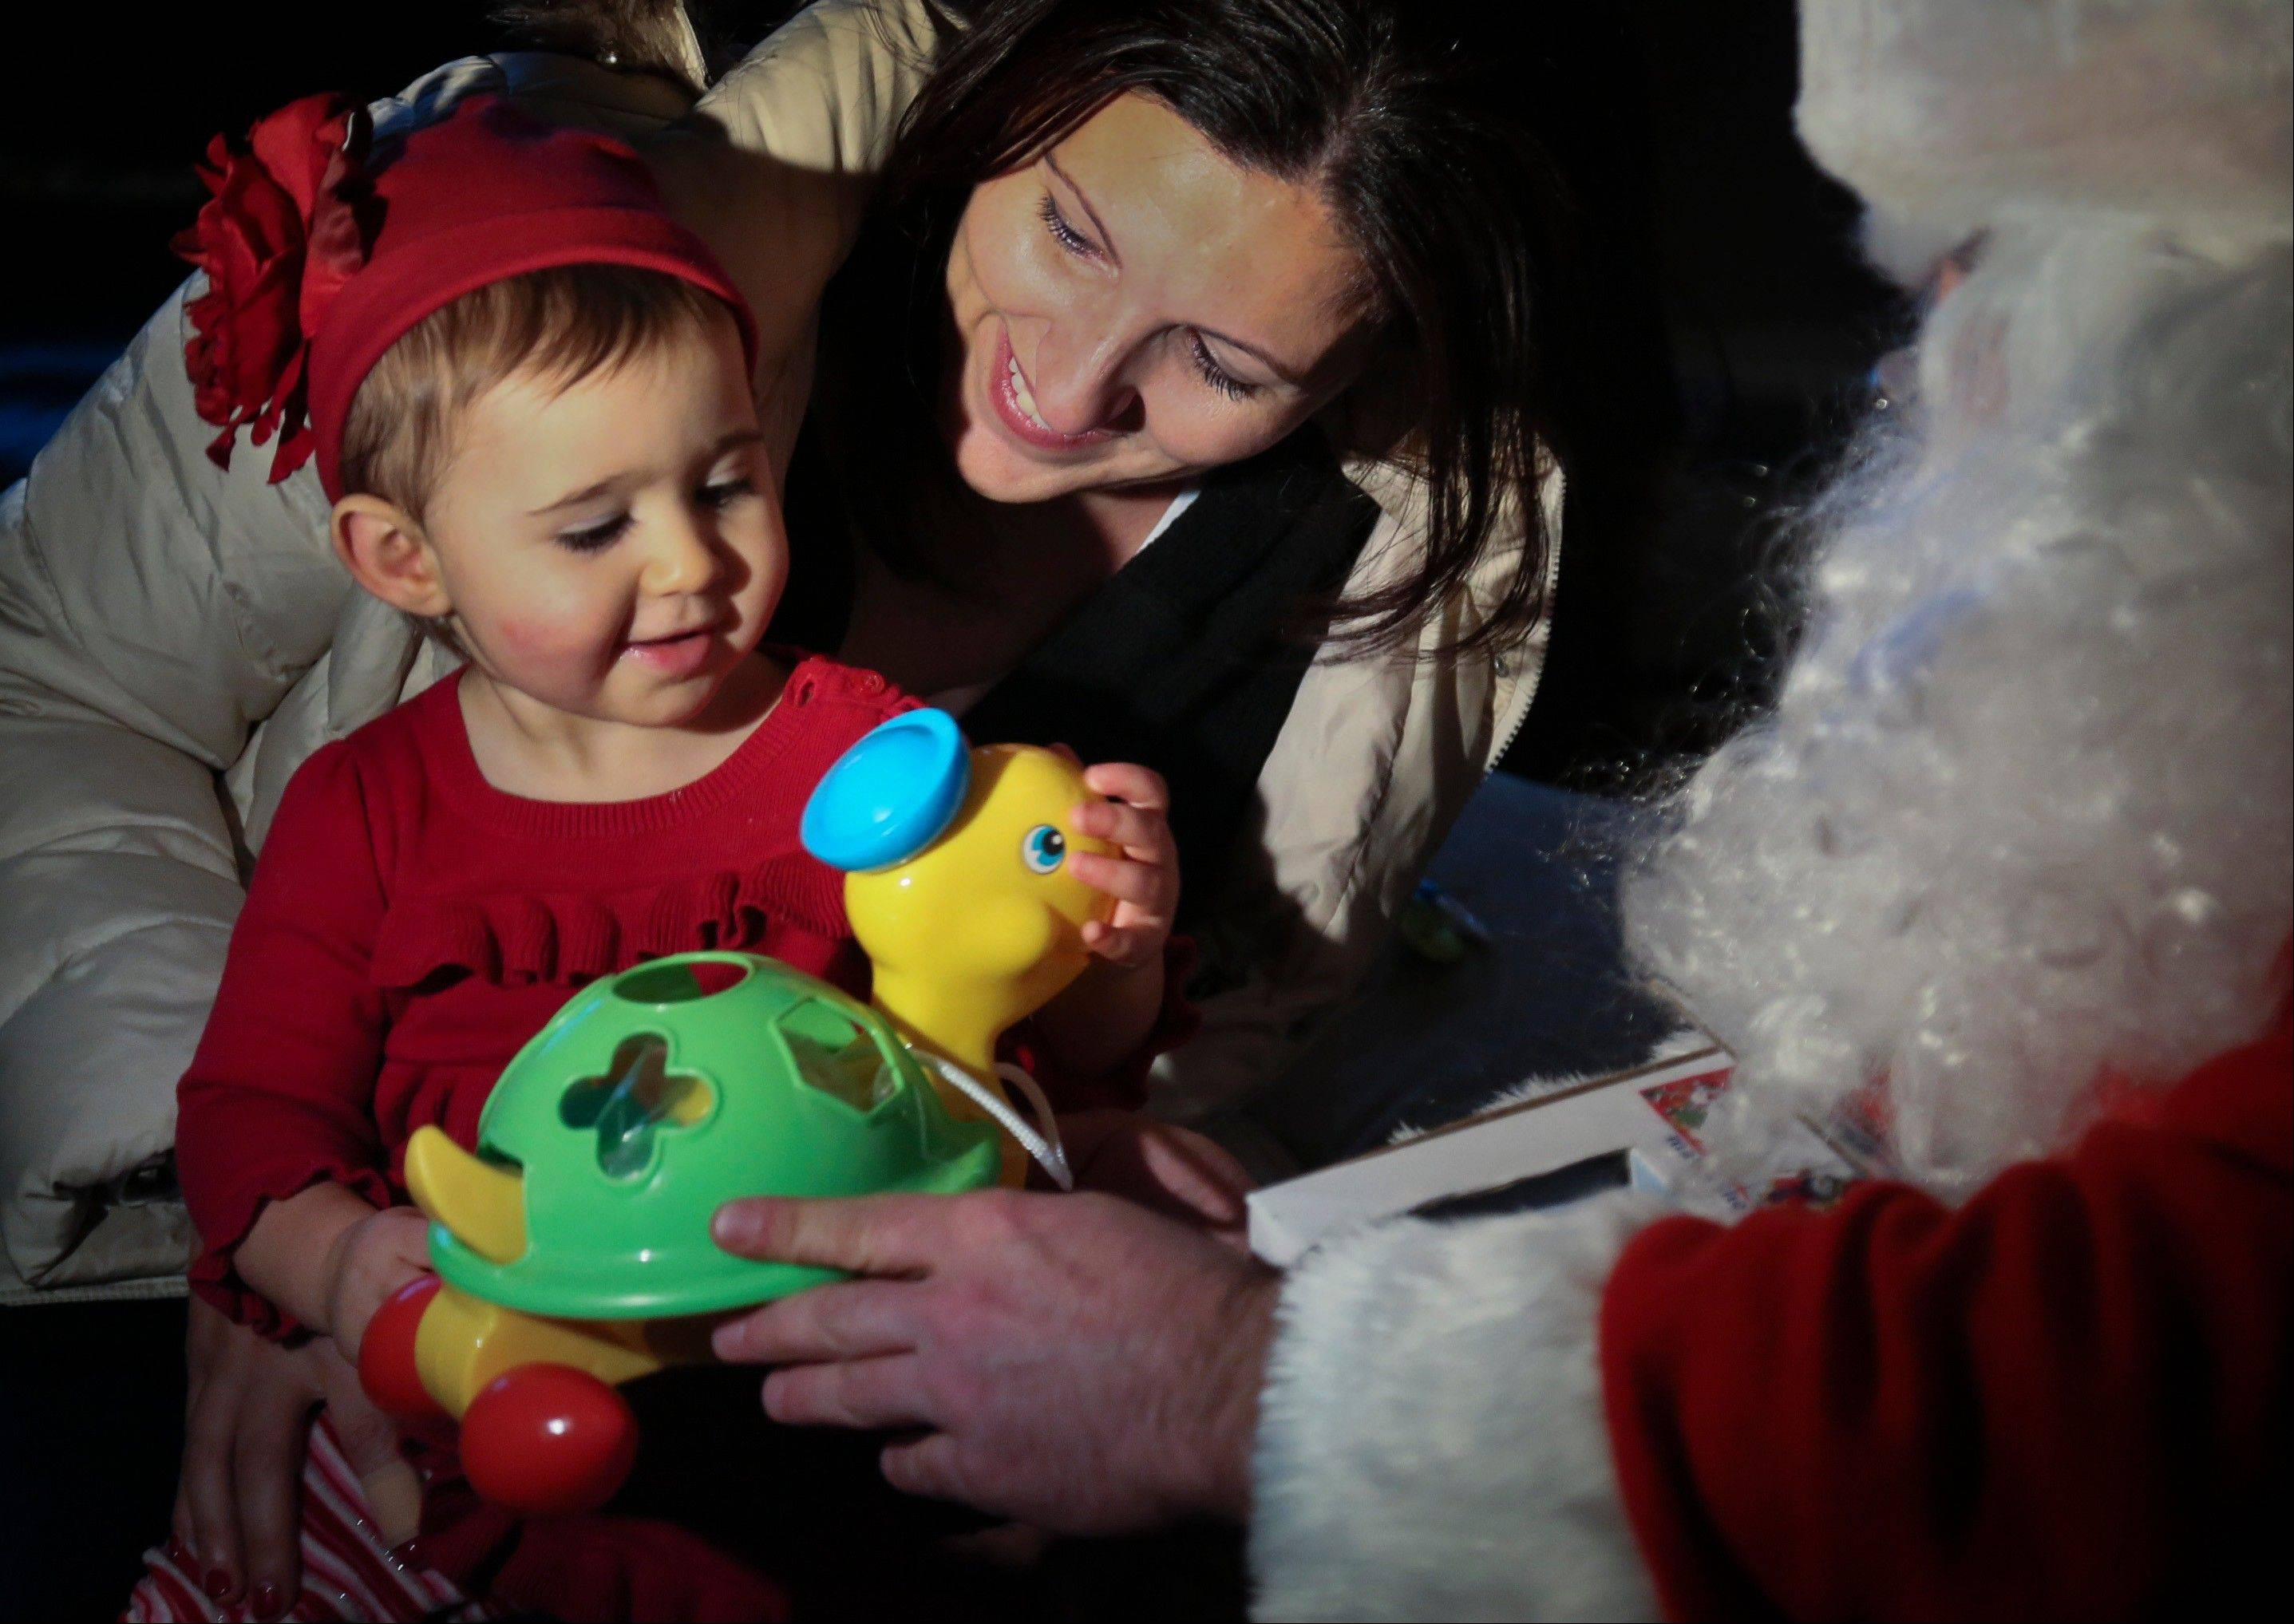 Elizabeth Sampol holds her daughter Ella, 14 months, who received a toy from Michael Sciaraffo, as Santa, in the Belle Harbor neighborhood of the Queens borough of New York. Using Facebook, Sciaraffo started a charitable enterprise to collect and personally deliver toys to children affected by Superstorm Sandy, dressed as Santa Claus.